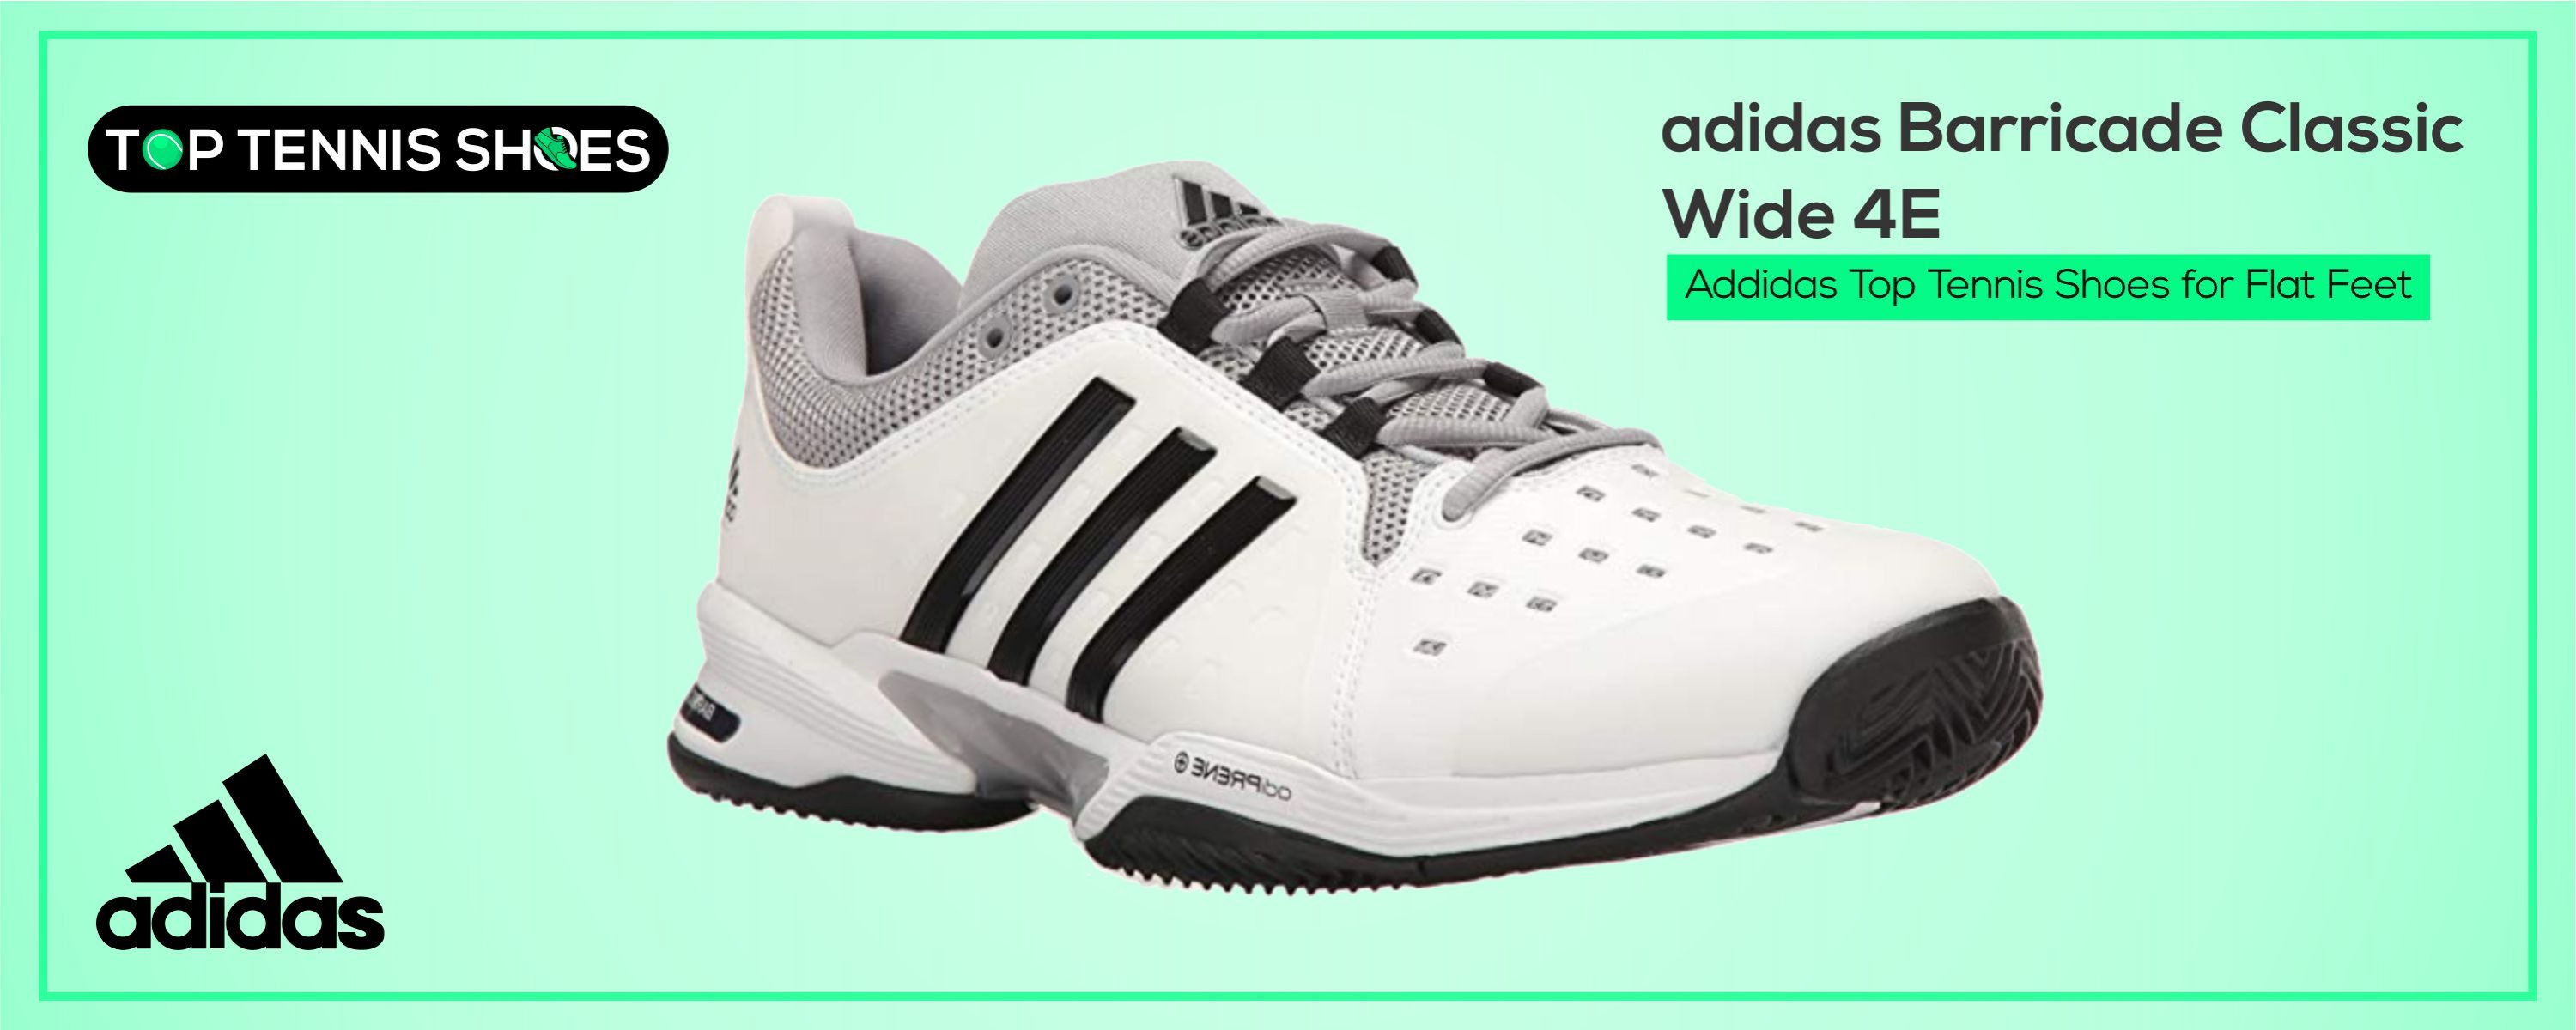 adidas tennis shoes for flat feet